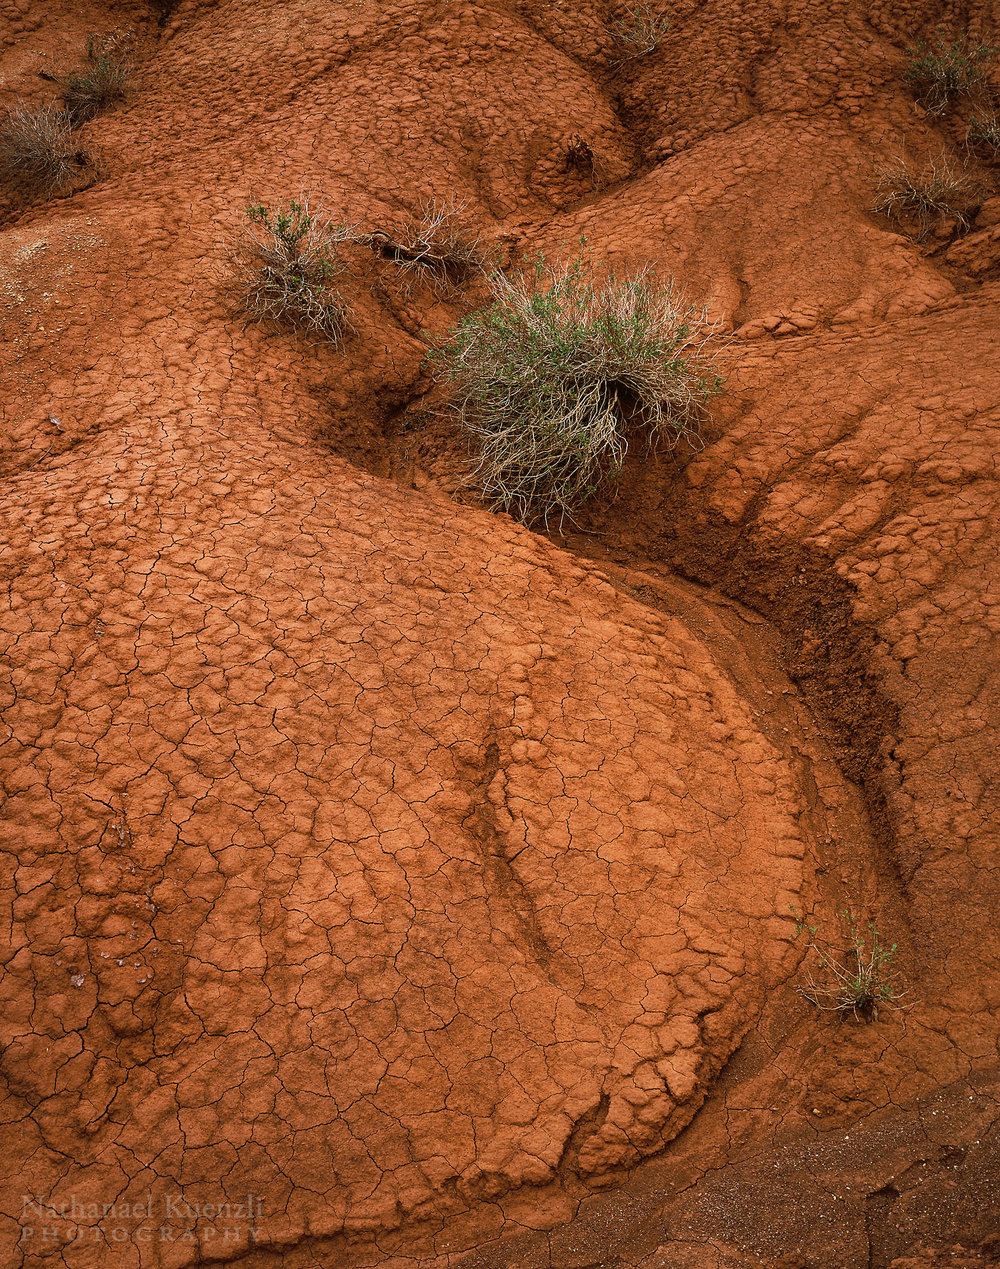 Cracked Dirt, Capitol Reef National Park, Utah, May 2005